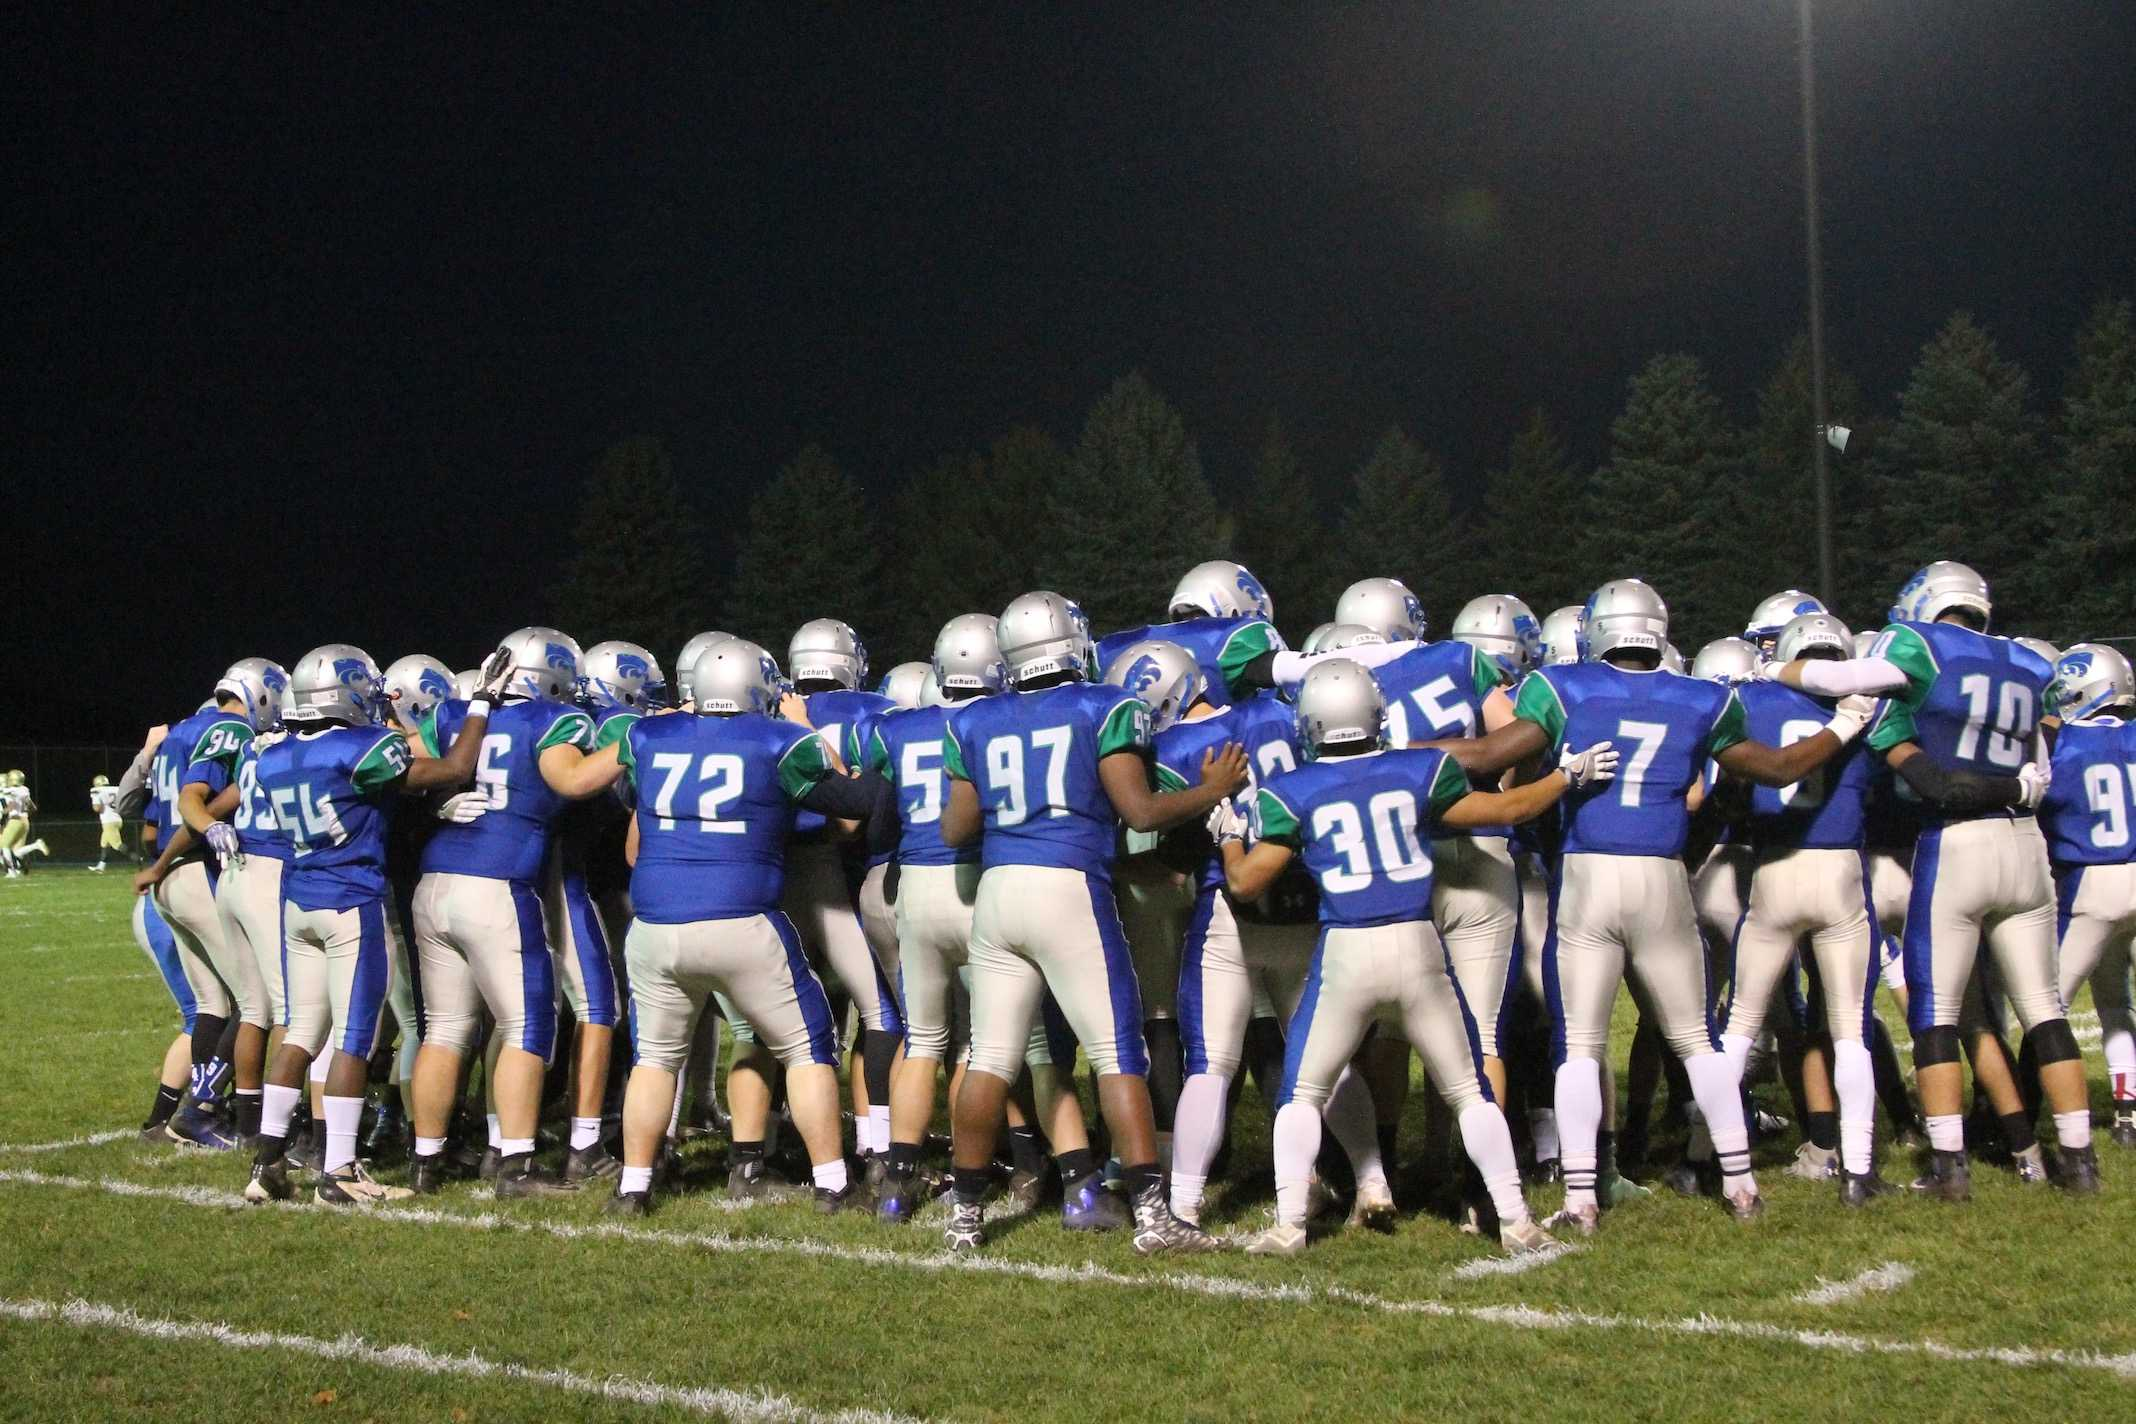 Wildcats huddle up